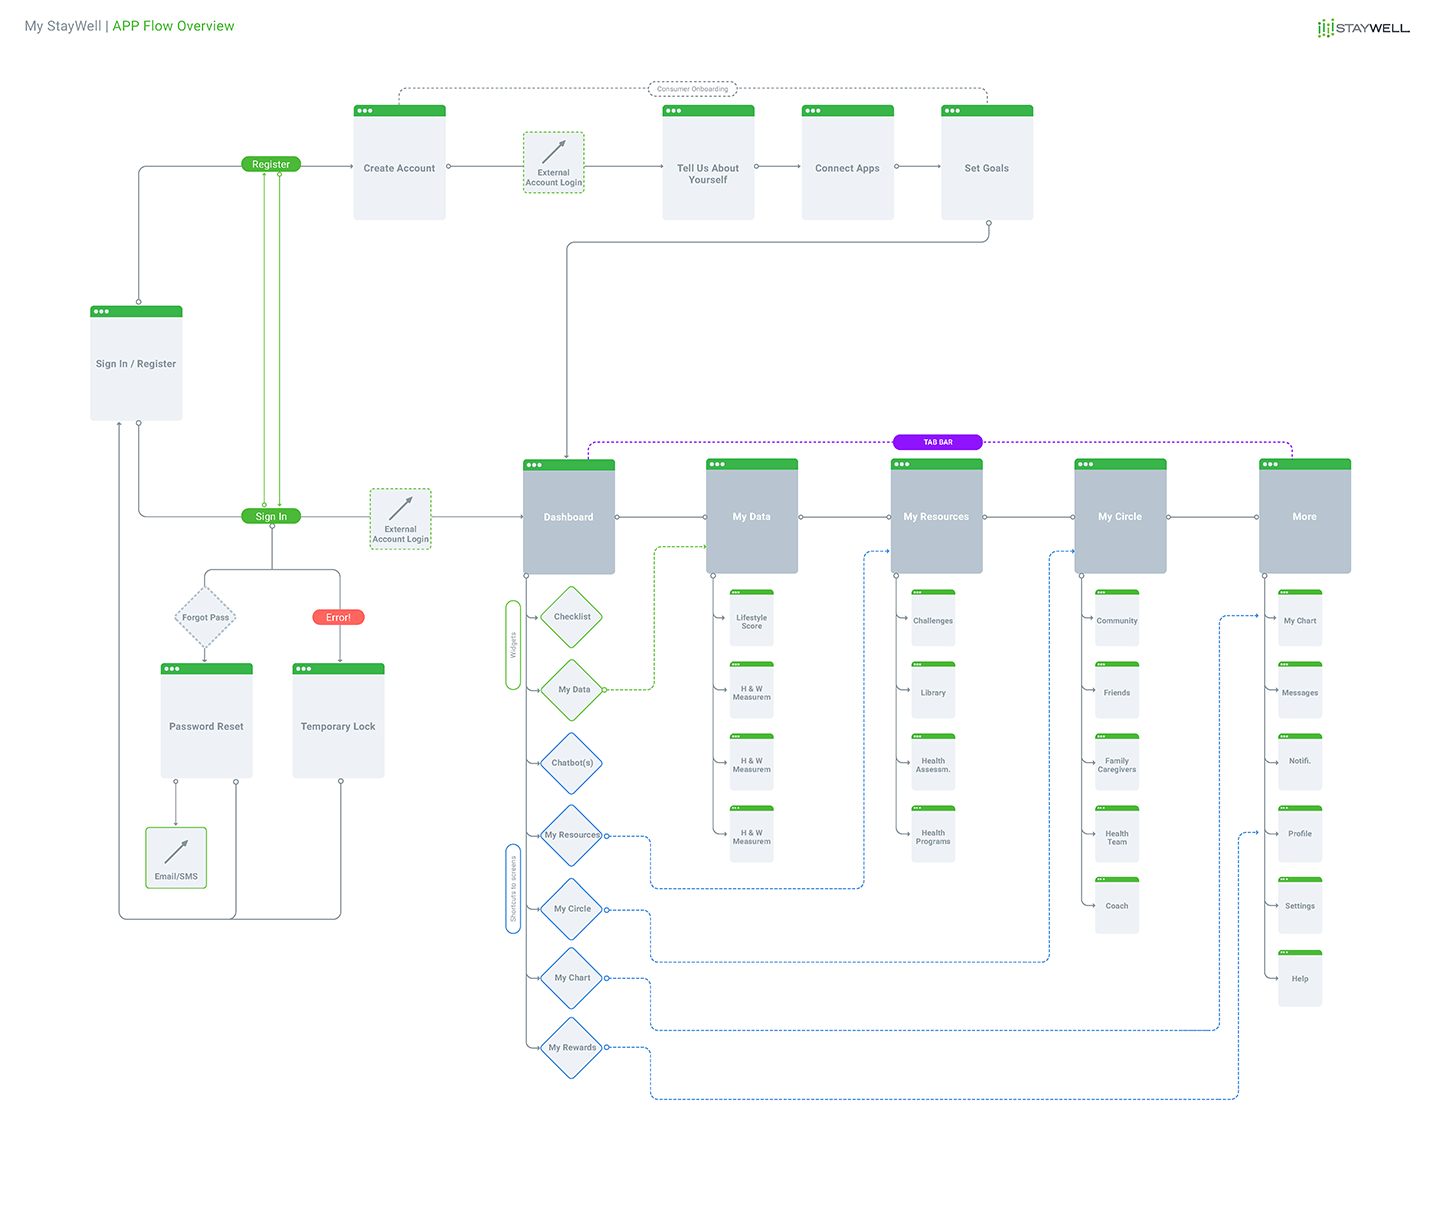 Flowchart of the information architecture and user flow of the new StayWell mobile app concept